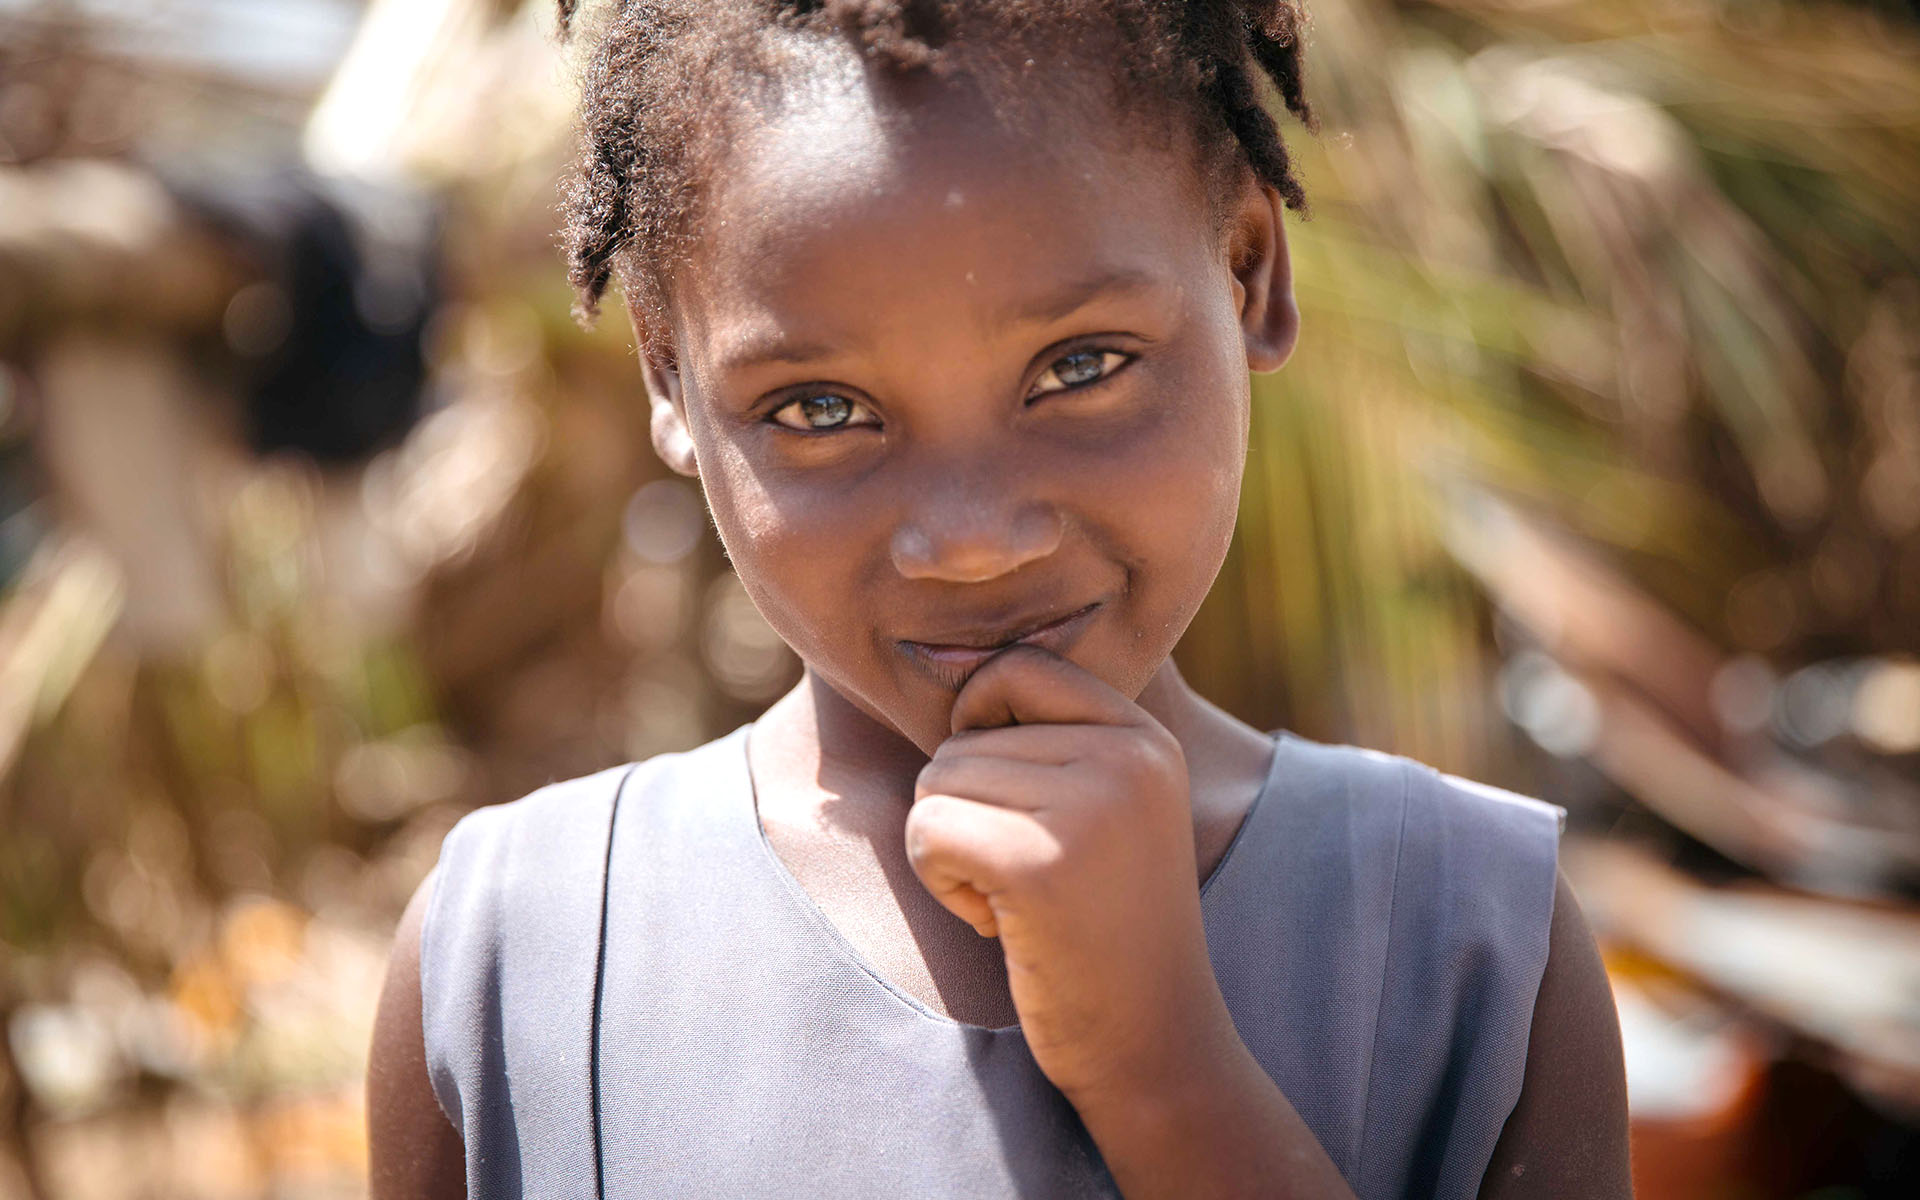 A Haitian girl in Compassion's program after surviving Hurricane Matthew